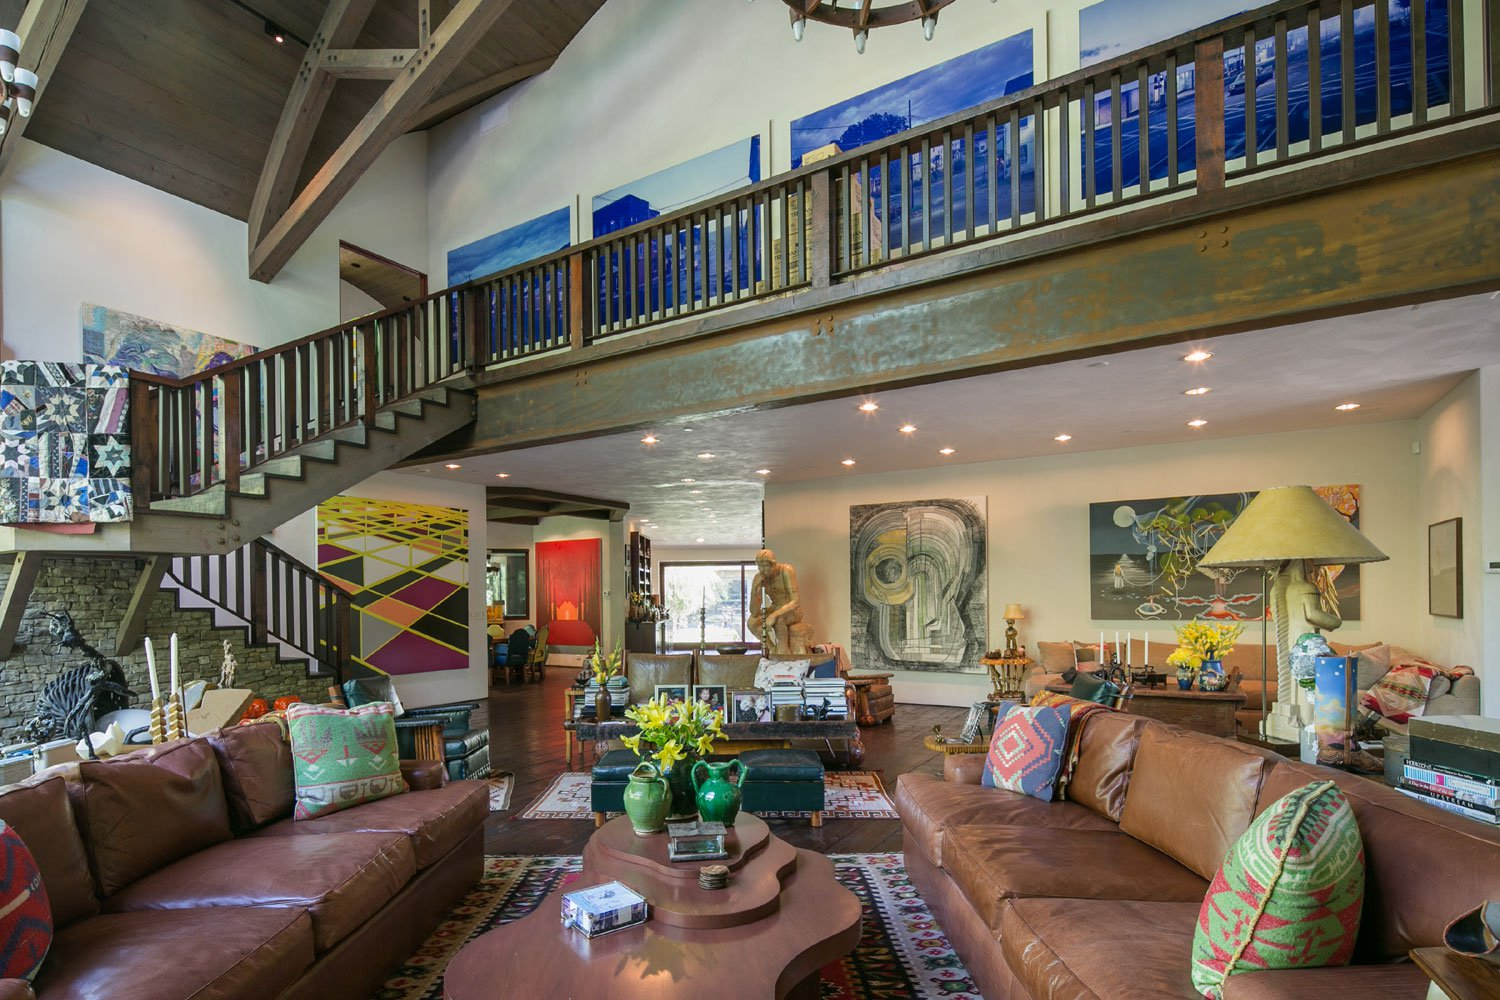 The home was designed to reflect a collector's passion for art and life and place.